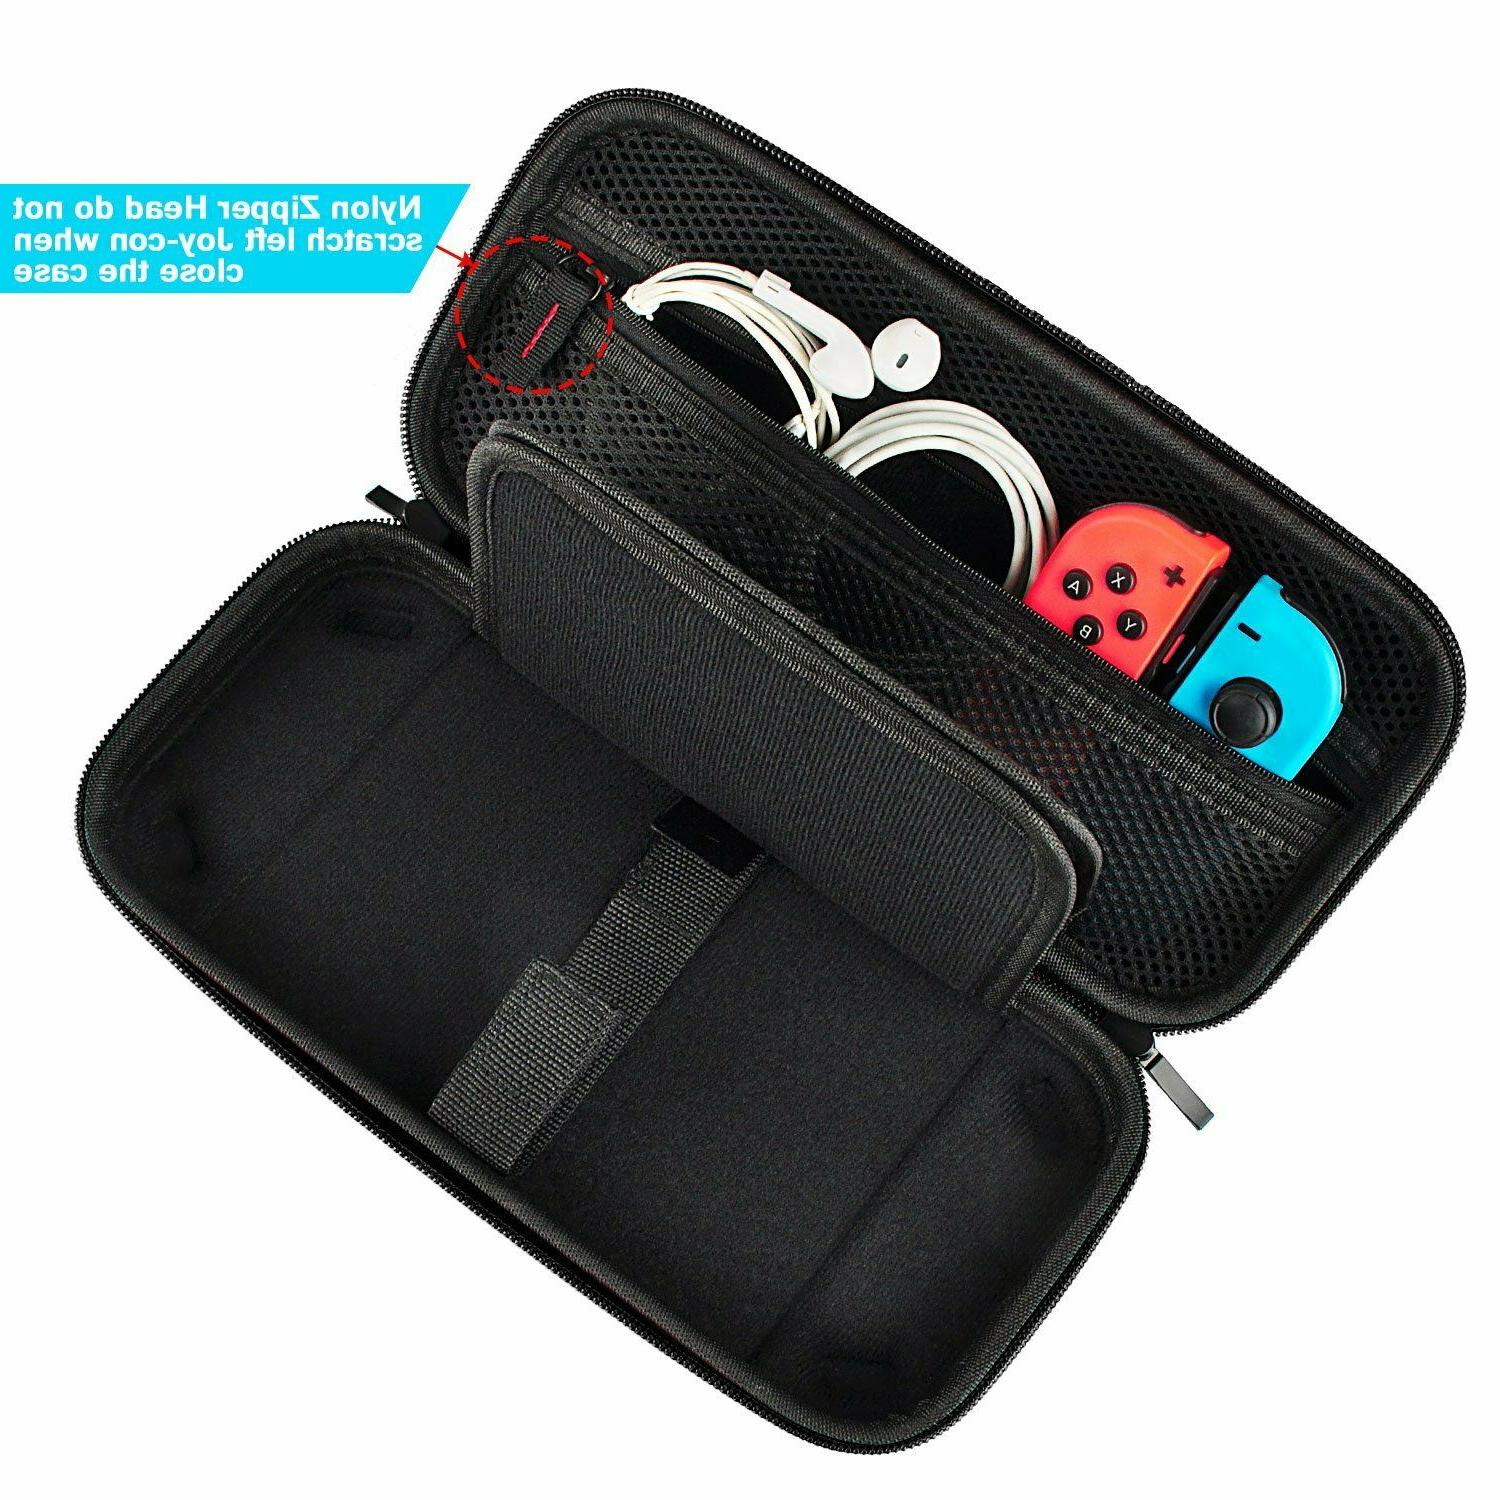 Carrying Nintendo Switch Protective Hard Portable